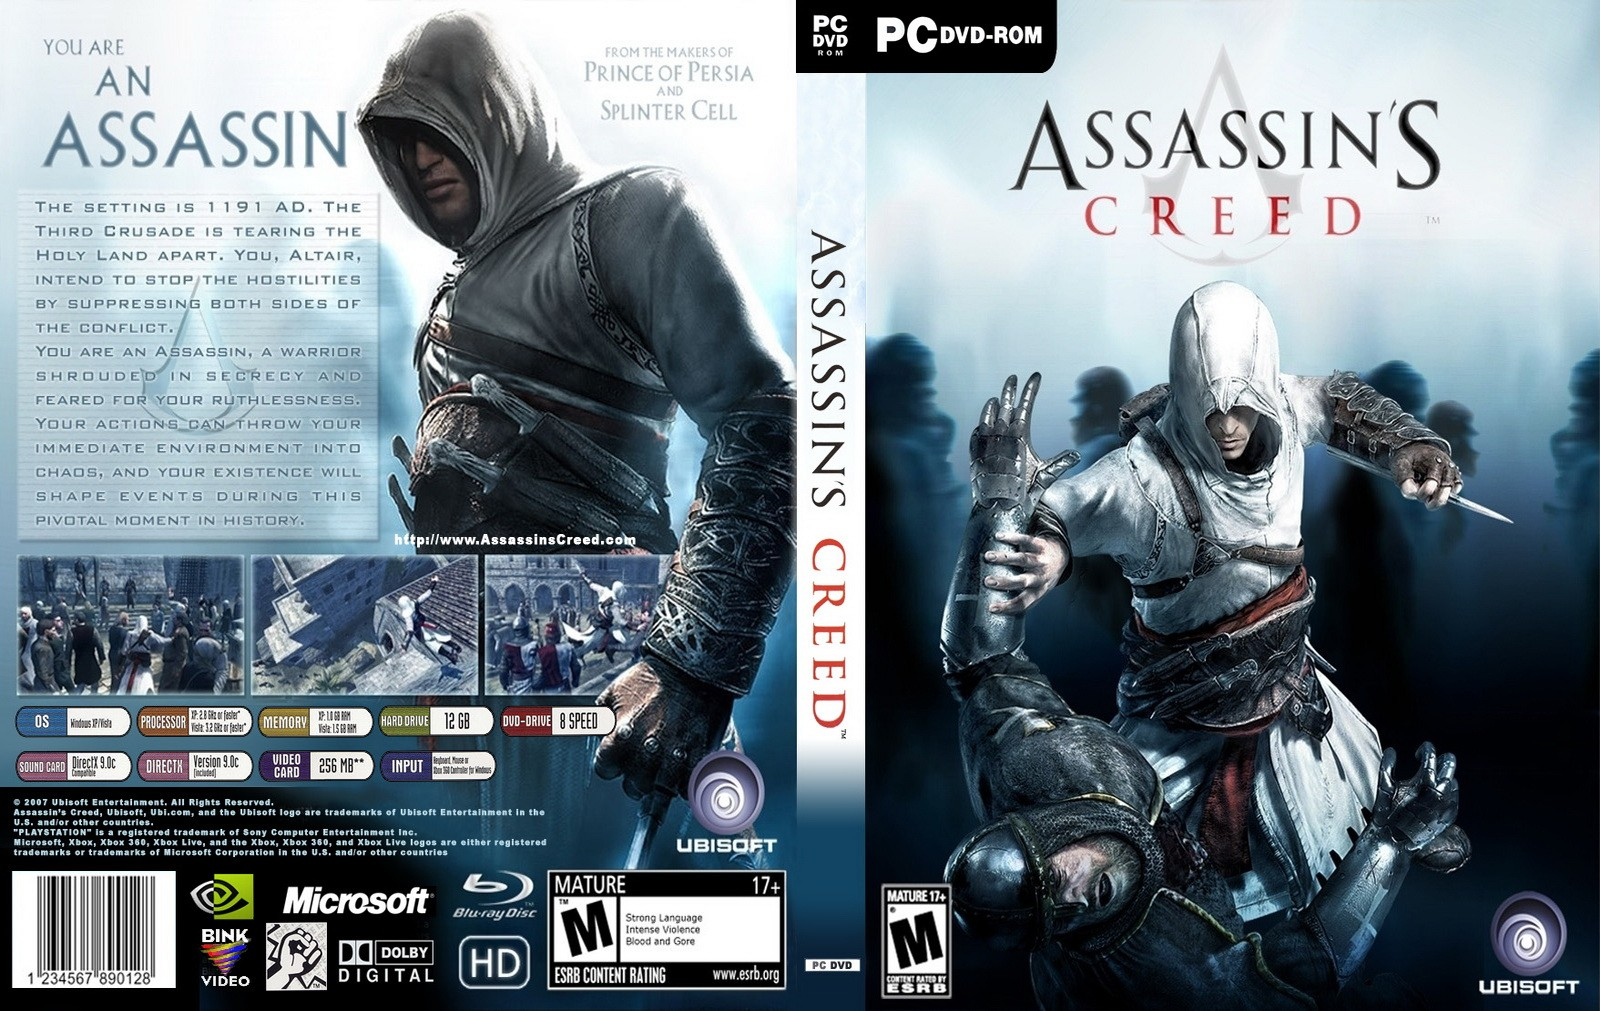 assassins creed 1 free download for windows 10